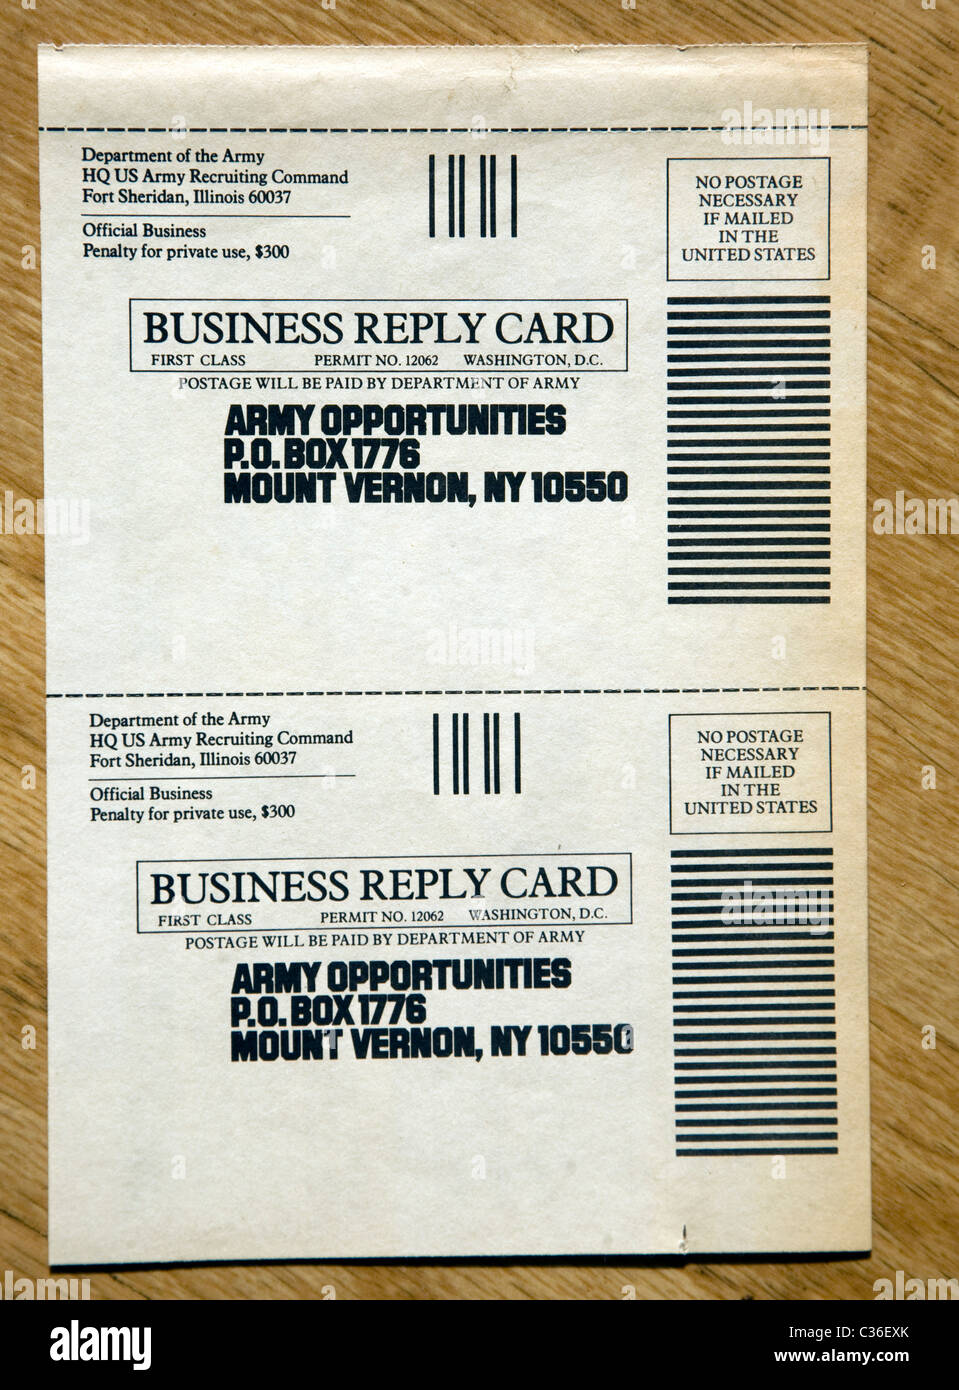 Business reply card usa army recruitment advert 1970s us military business reply card usa army recruitment advert 1970s us military reheart Images